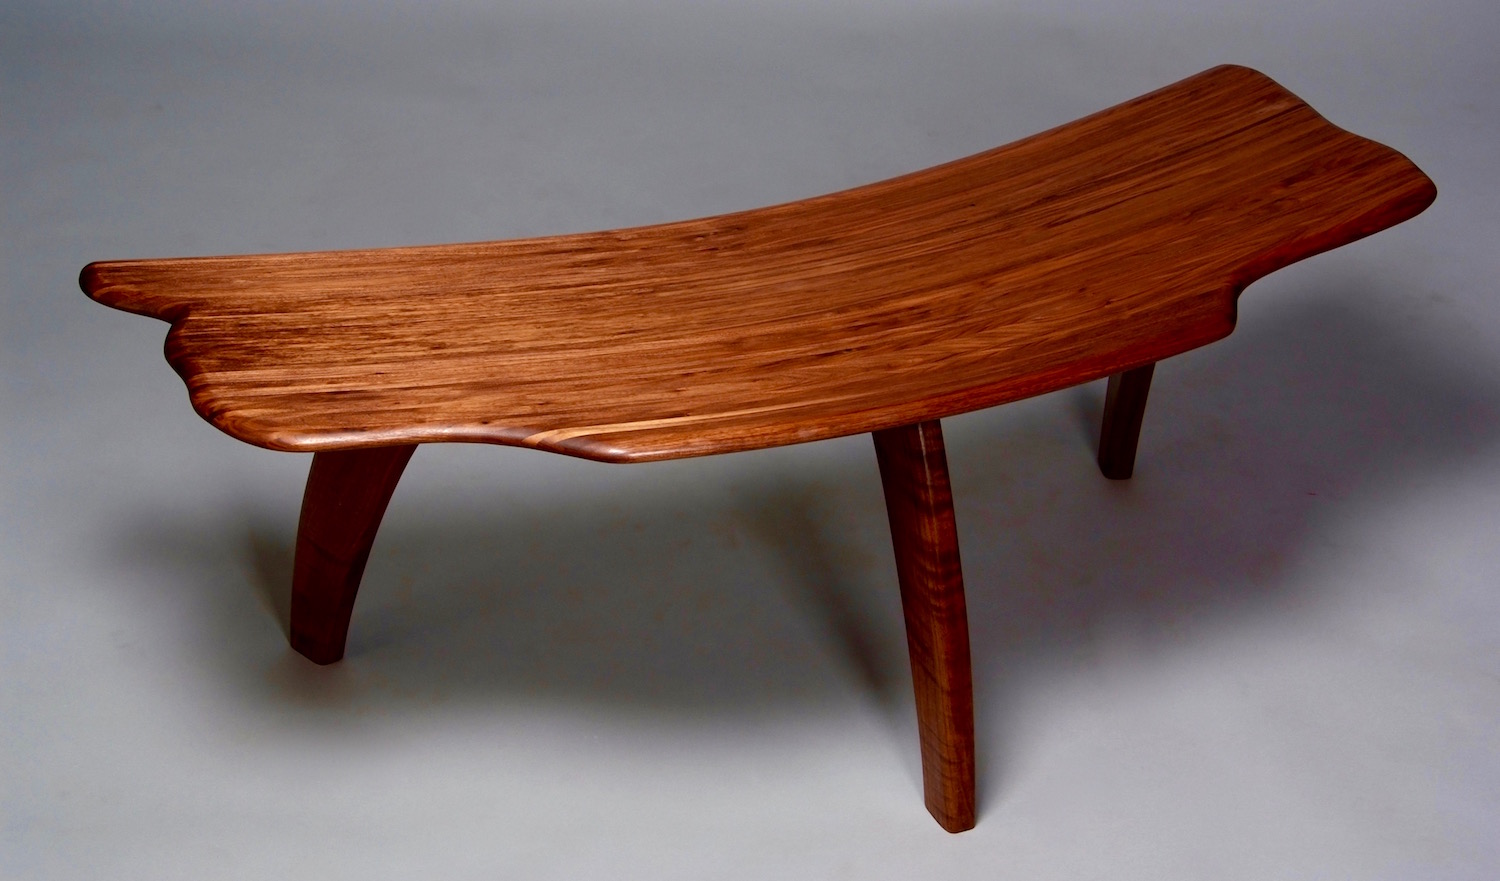 bent lamination-walnut.jpg